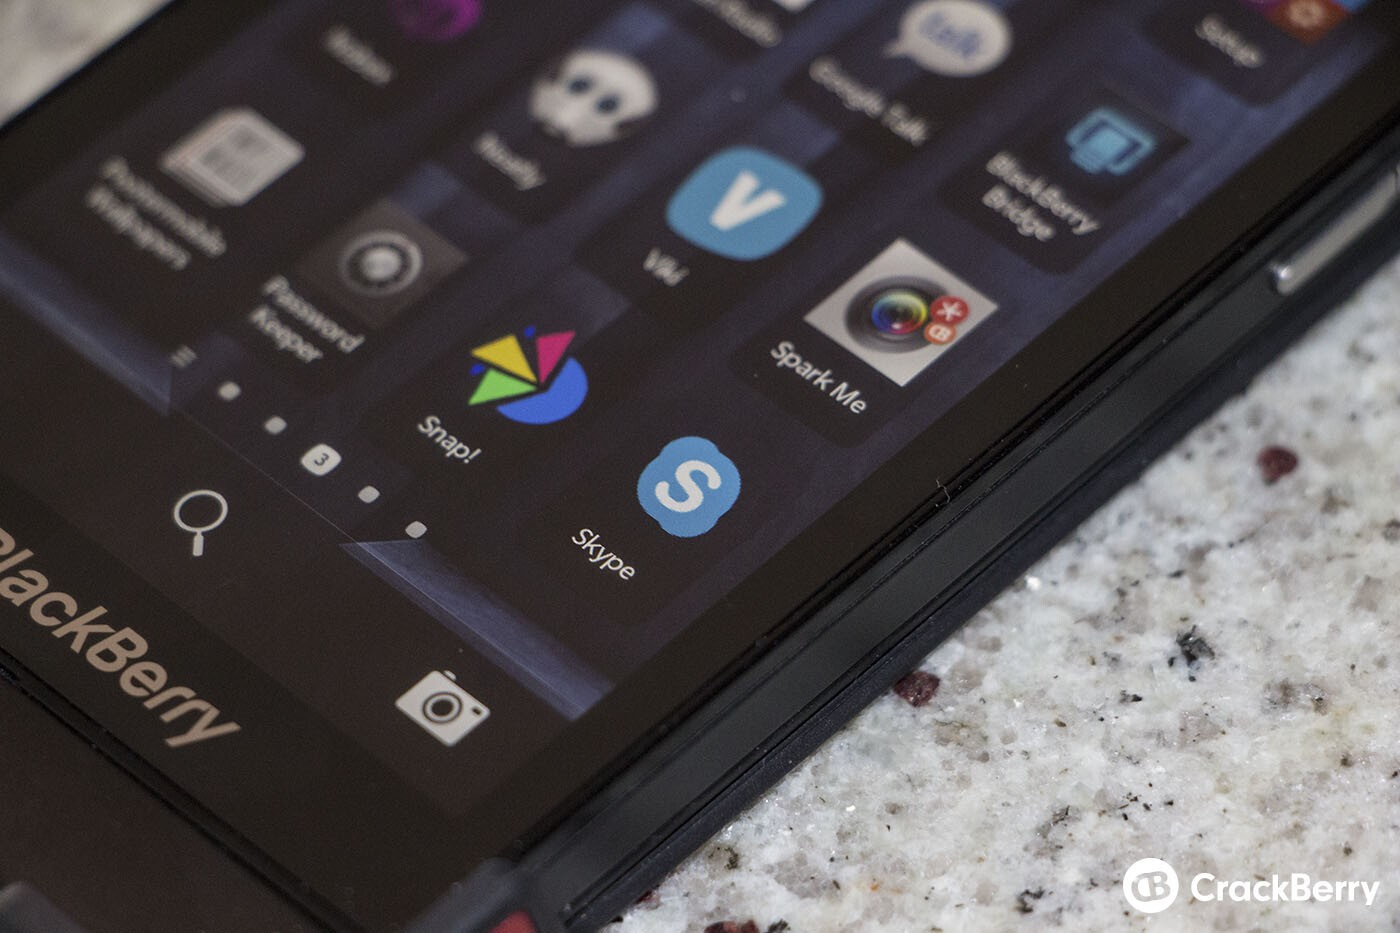 Skype collaborating with BlackBerry to ensure the app runs well on BlackBerry 10